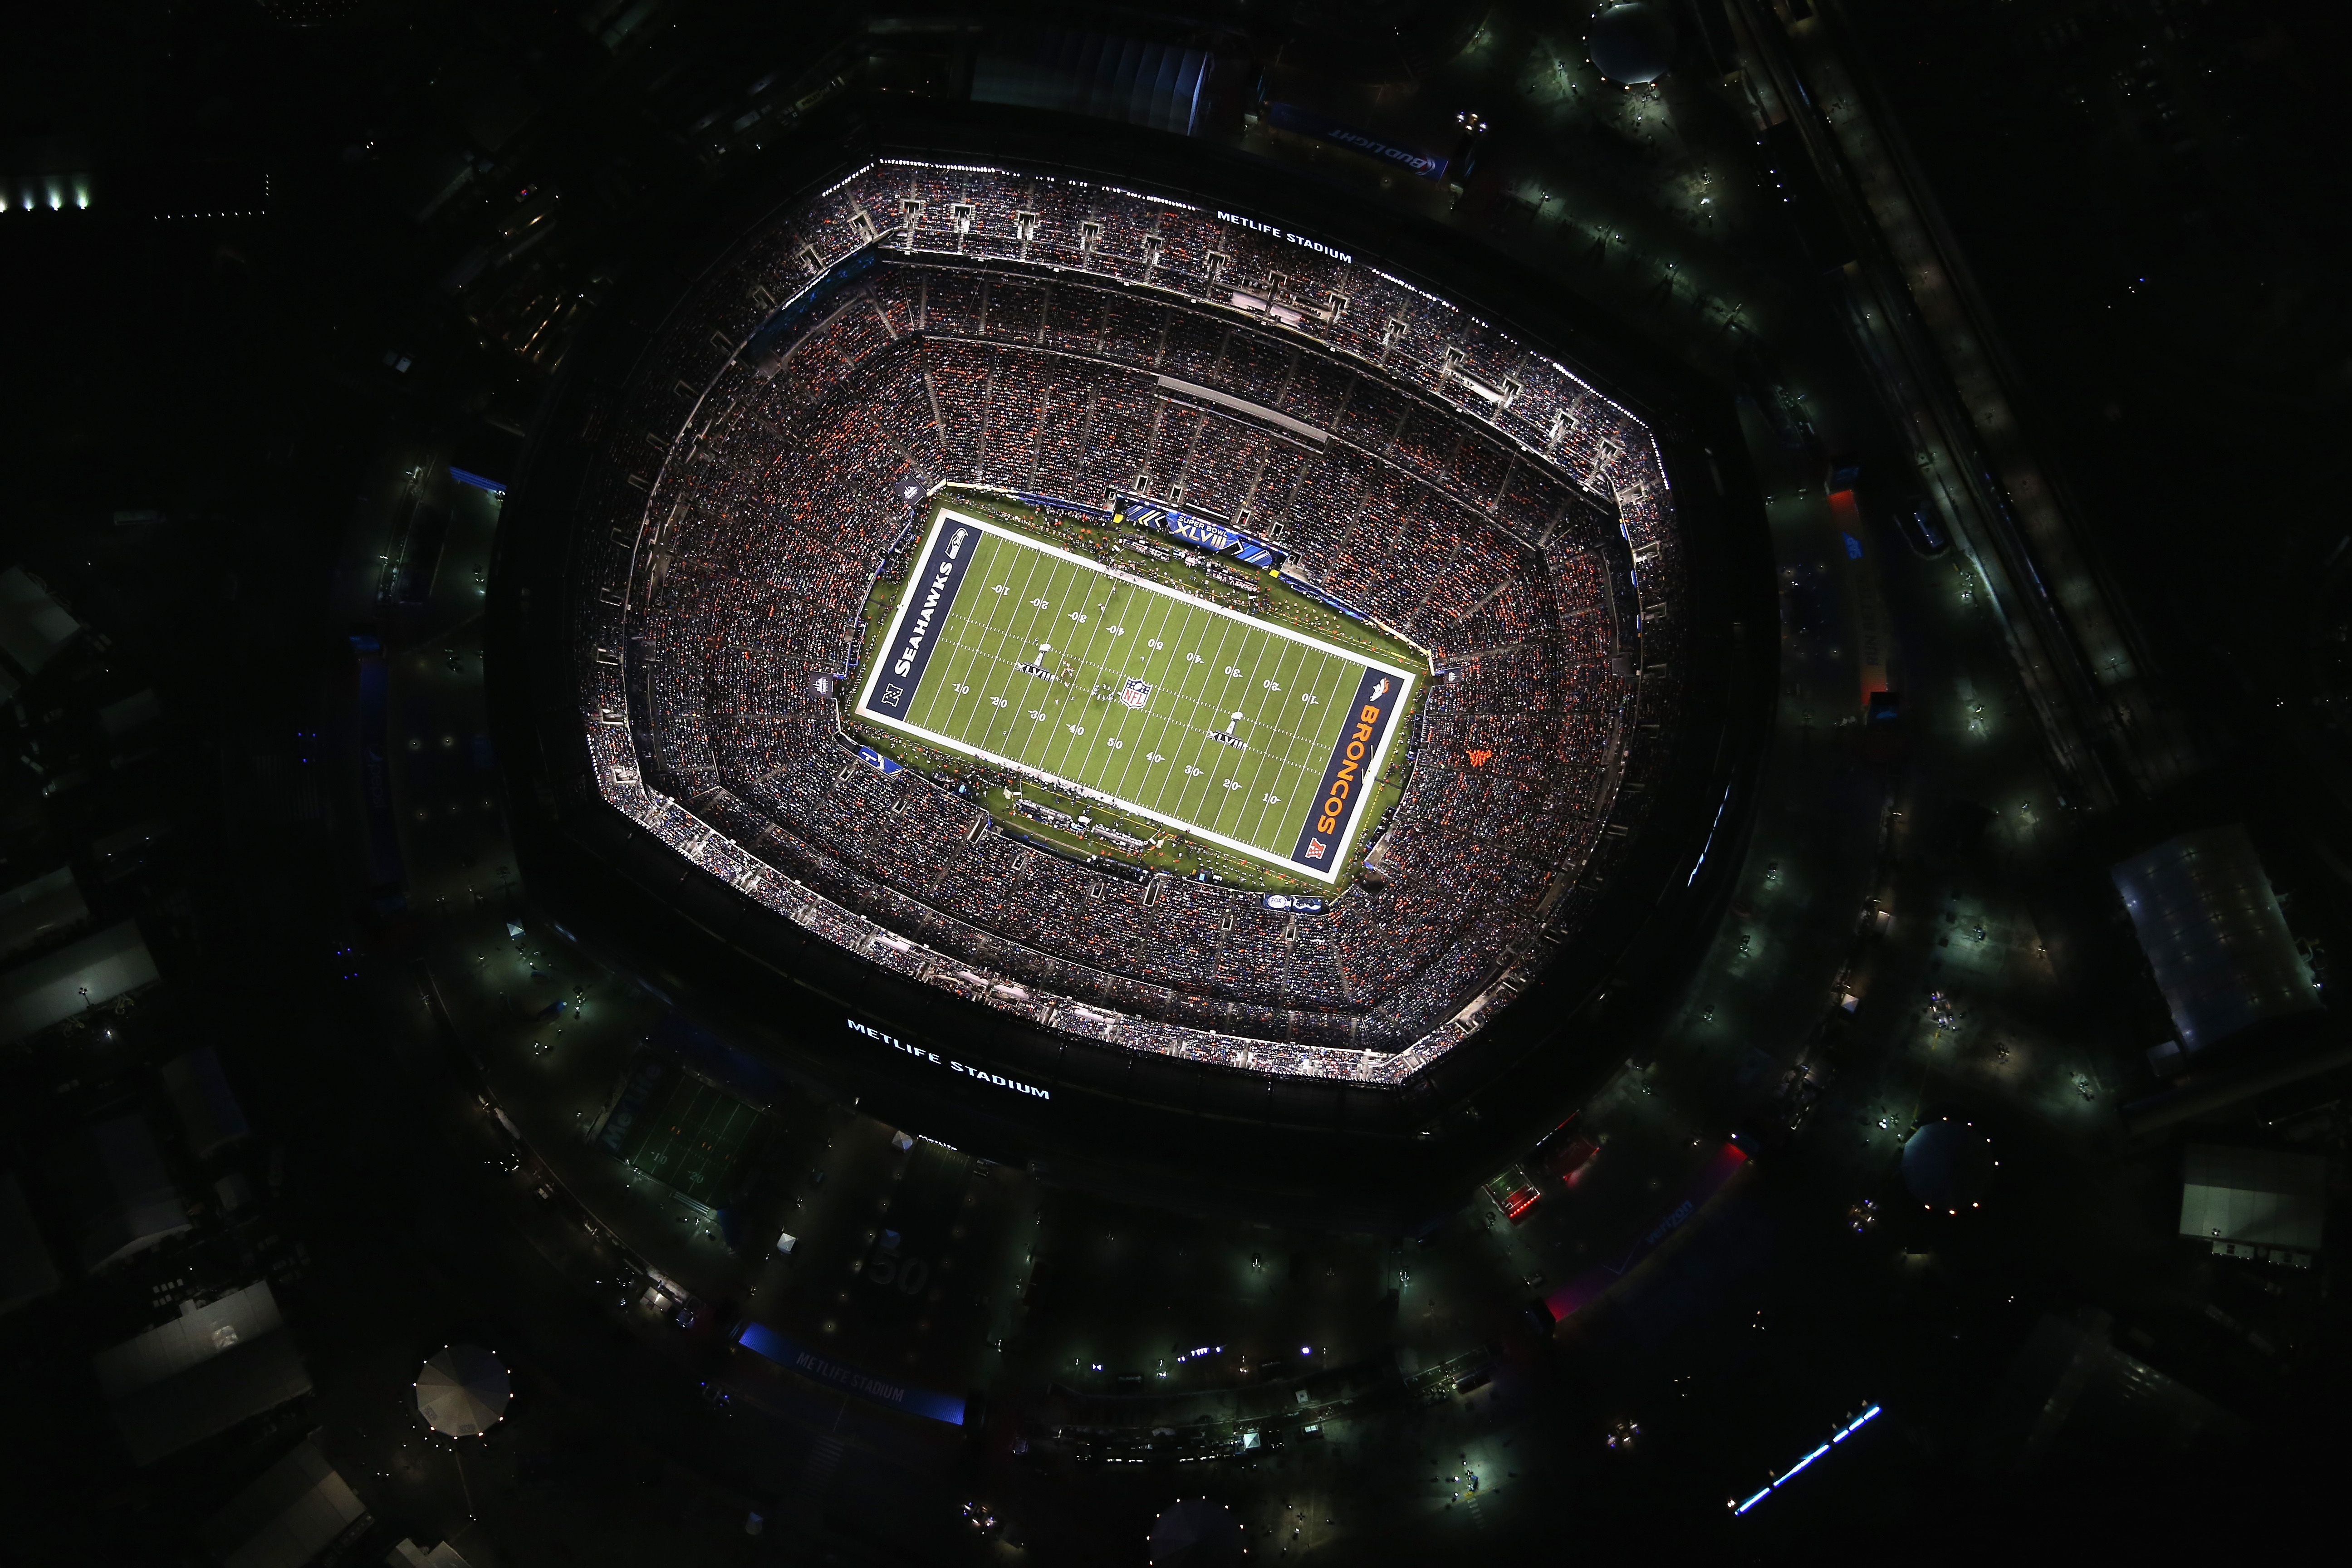 Metlife Stadium, owned and operated by both the New York Jets and New York Giants, hosts 20 NFL games per year, twice as many as any other NFL stadium. The stadium in East Rutherford, N.J., opened in 2010 and holds up to 82,500 people for football games.